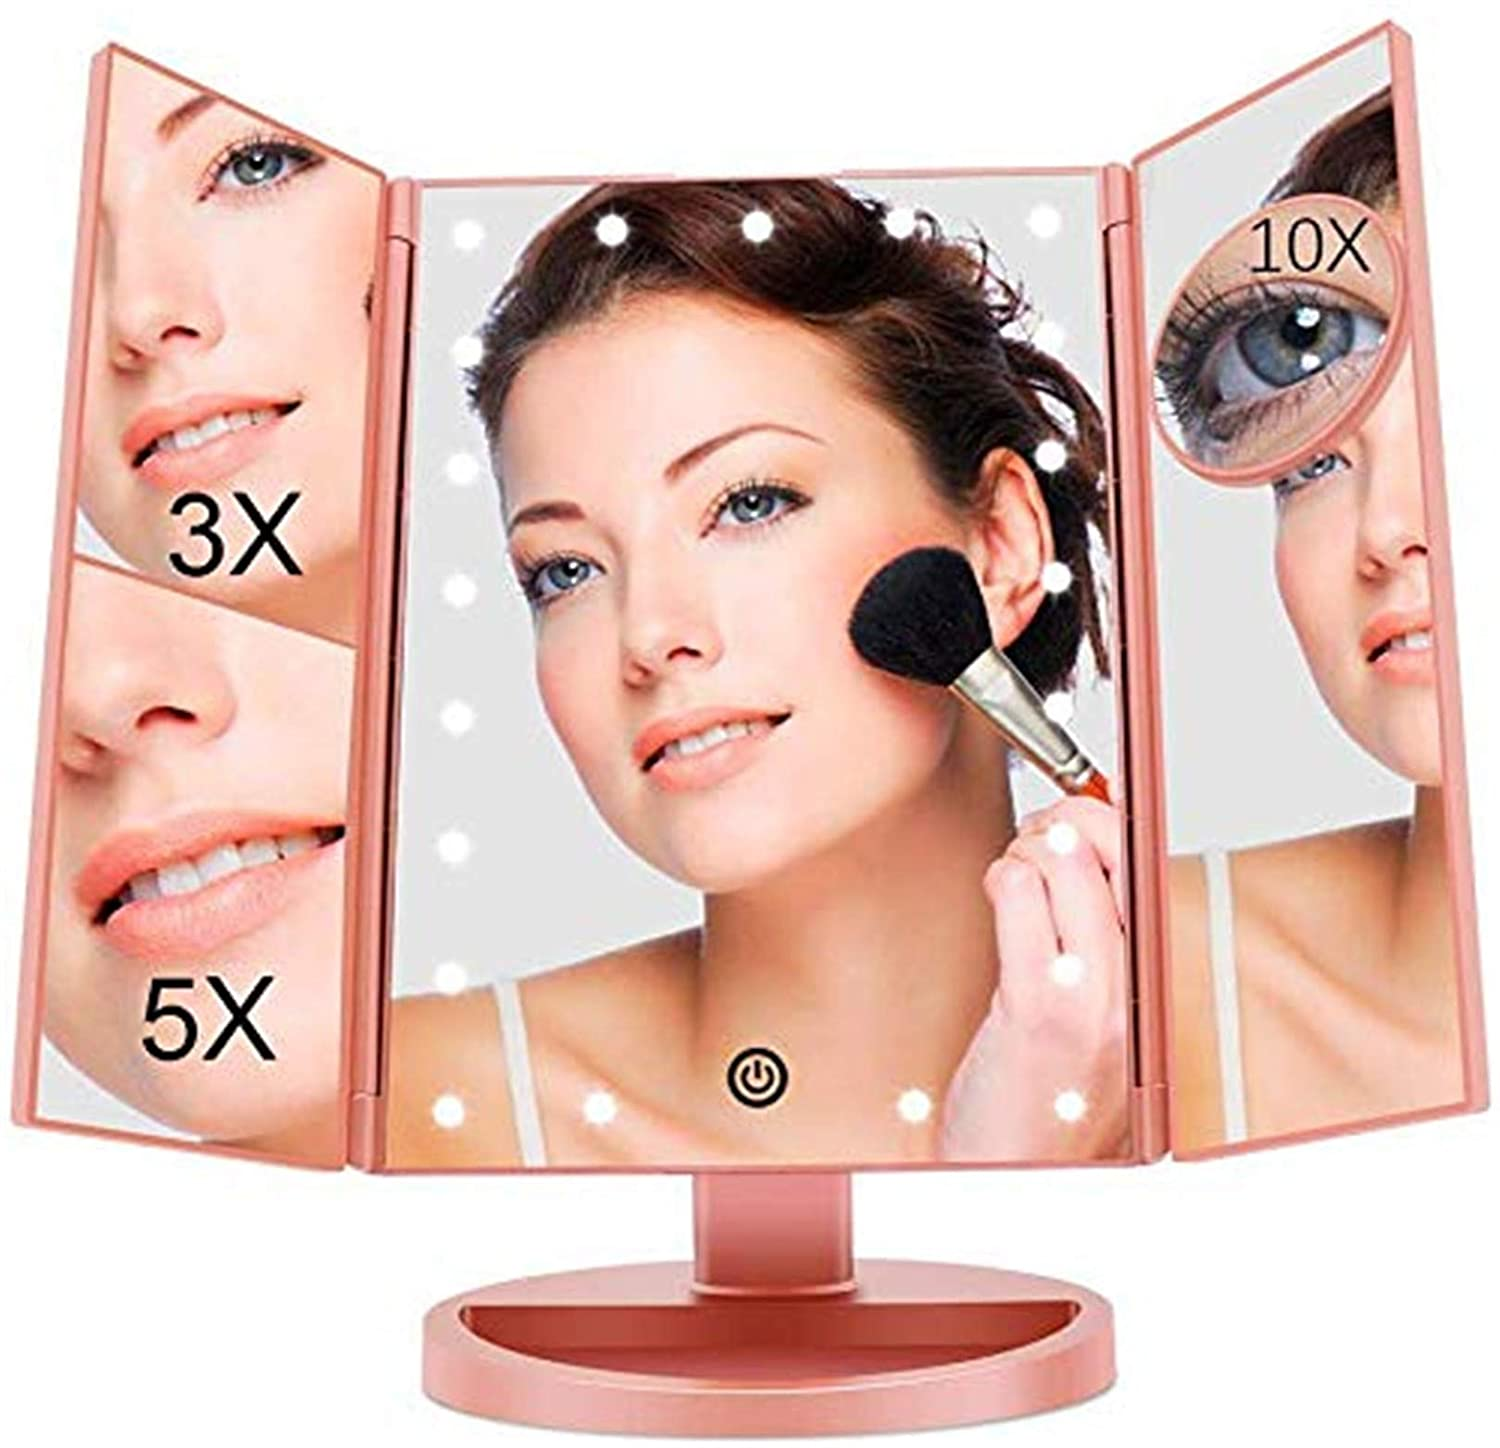 FASCINATE Trifold Led Lighted Makeup Mirror with 3X/5X/10X Magnification Vanity Mirror with 21 LED Lights, 180° Rotation Touch Screen Cosmetic Mirrors Dual Voltage Desk Mirror Tabletop (Rose Gold)